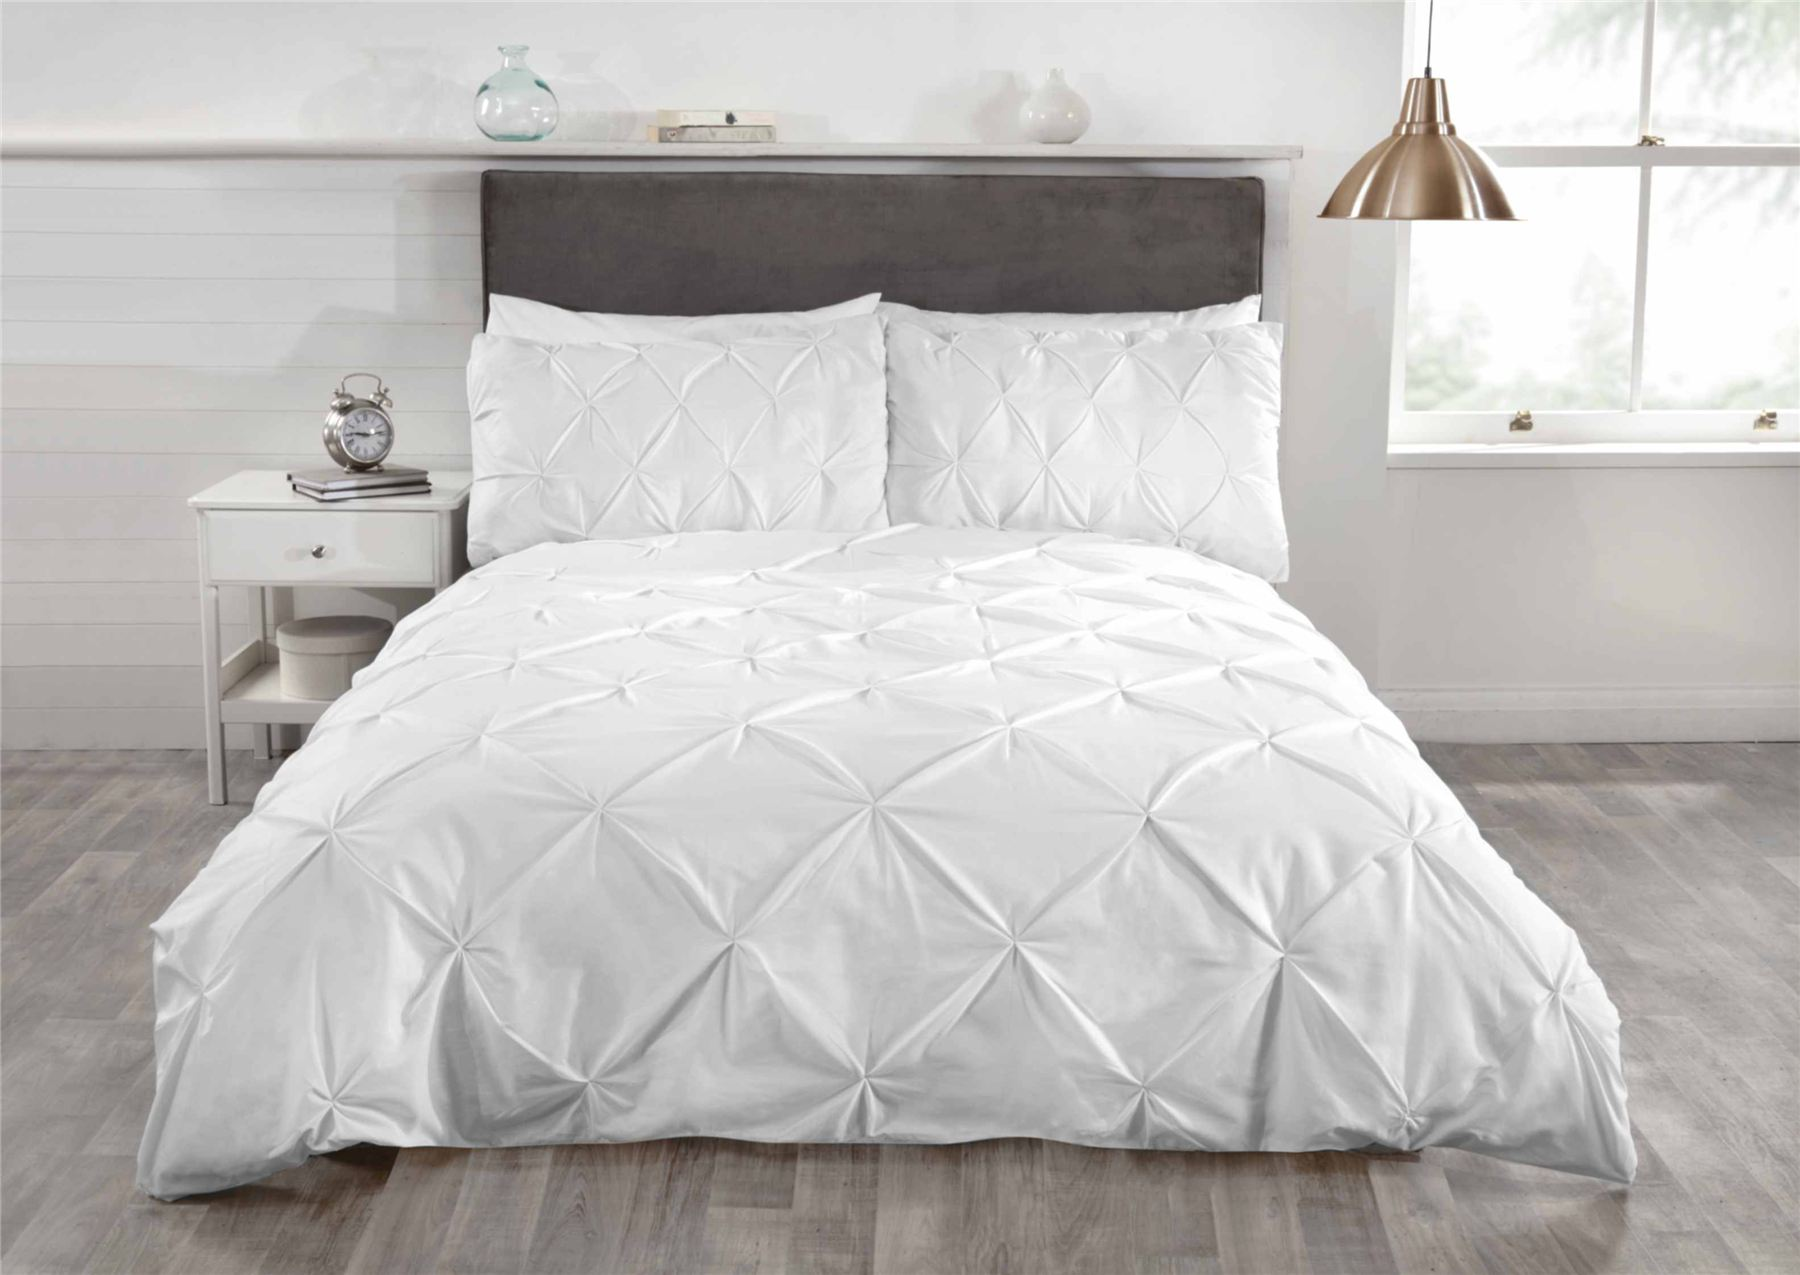 King Size Quilt Sets Amazon